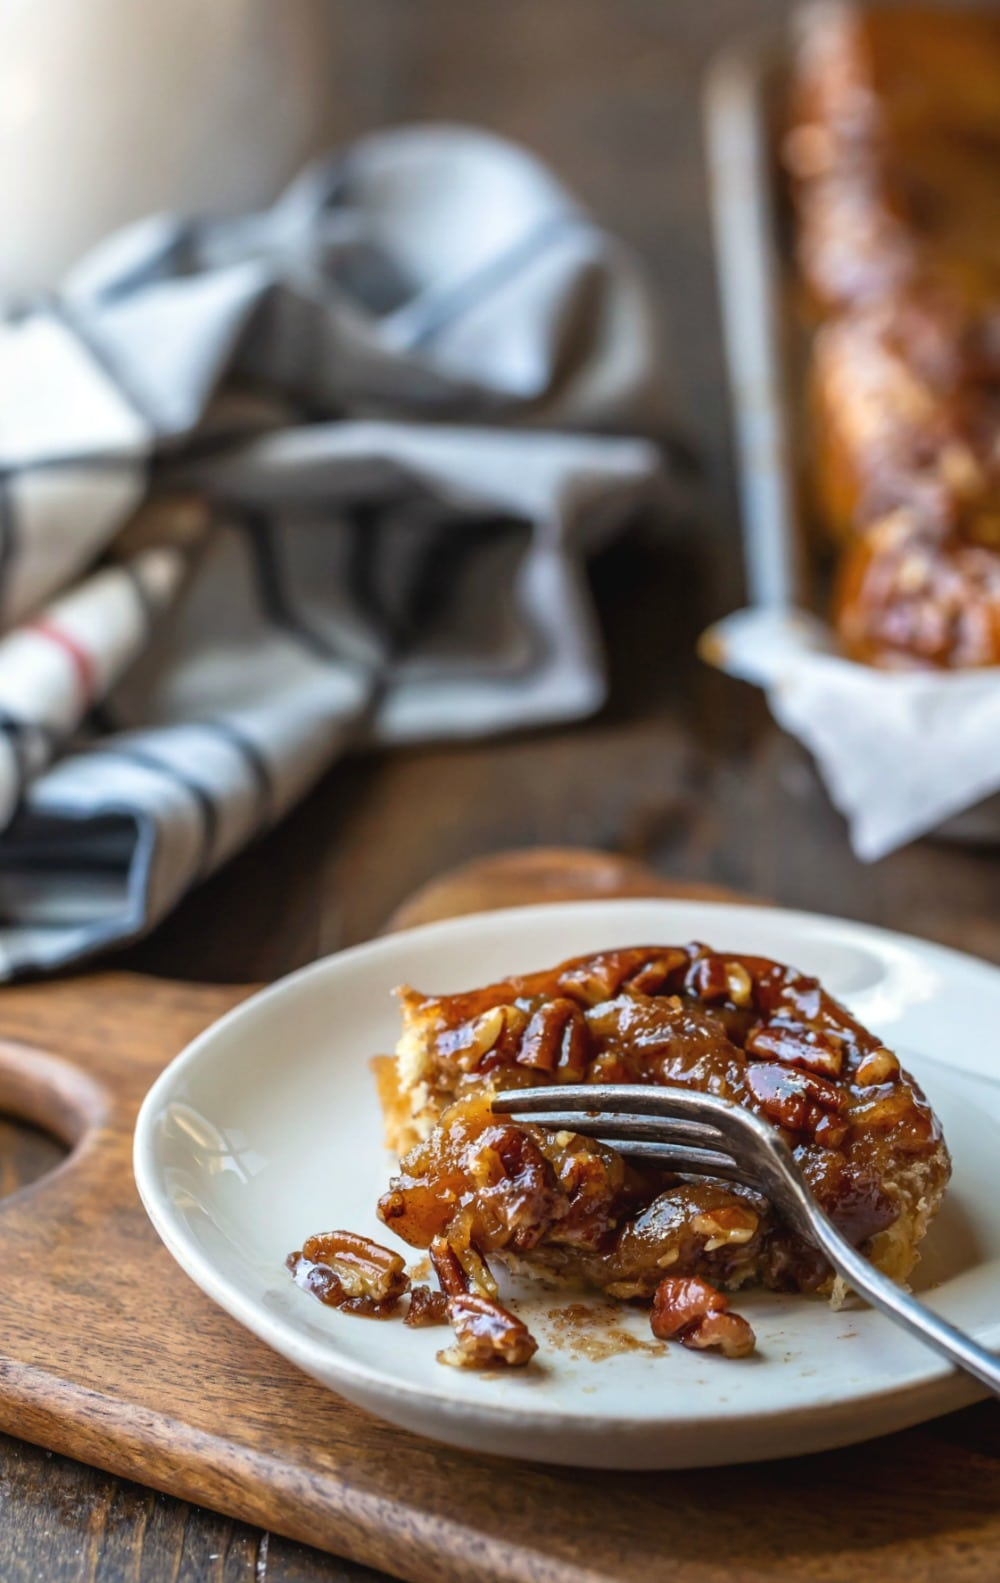 Easy sticky Bun on an off-white plate with a fork taking a bite